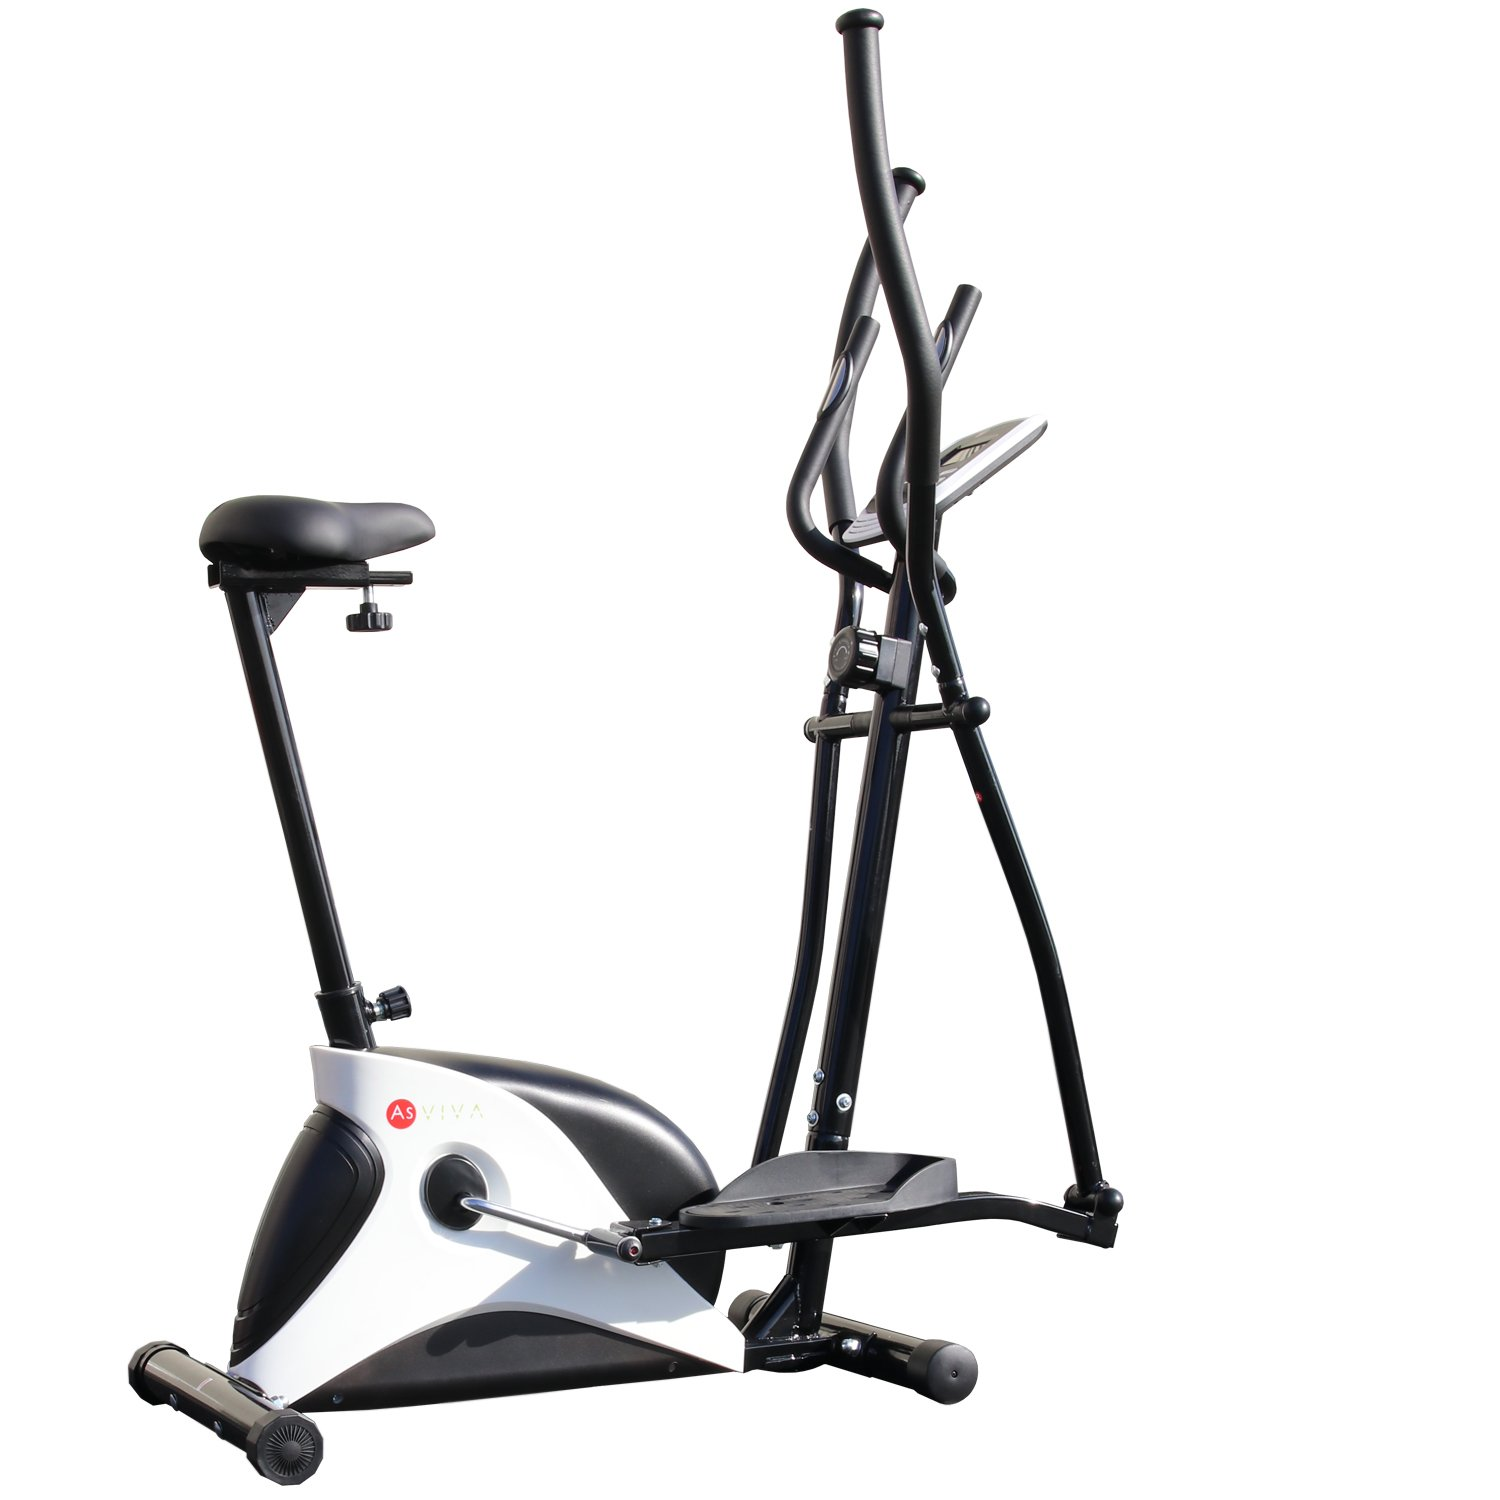 AsVIVA 2 en 1 Cycle Cardio C16 Elliptical Cross Trainer, Negro, M: Amazon.es: Deportes y aire libre